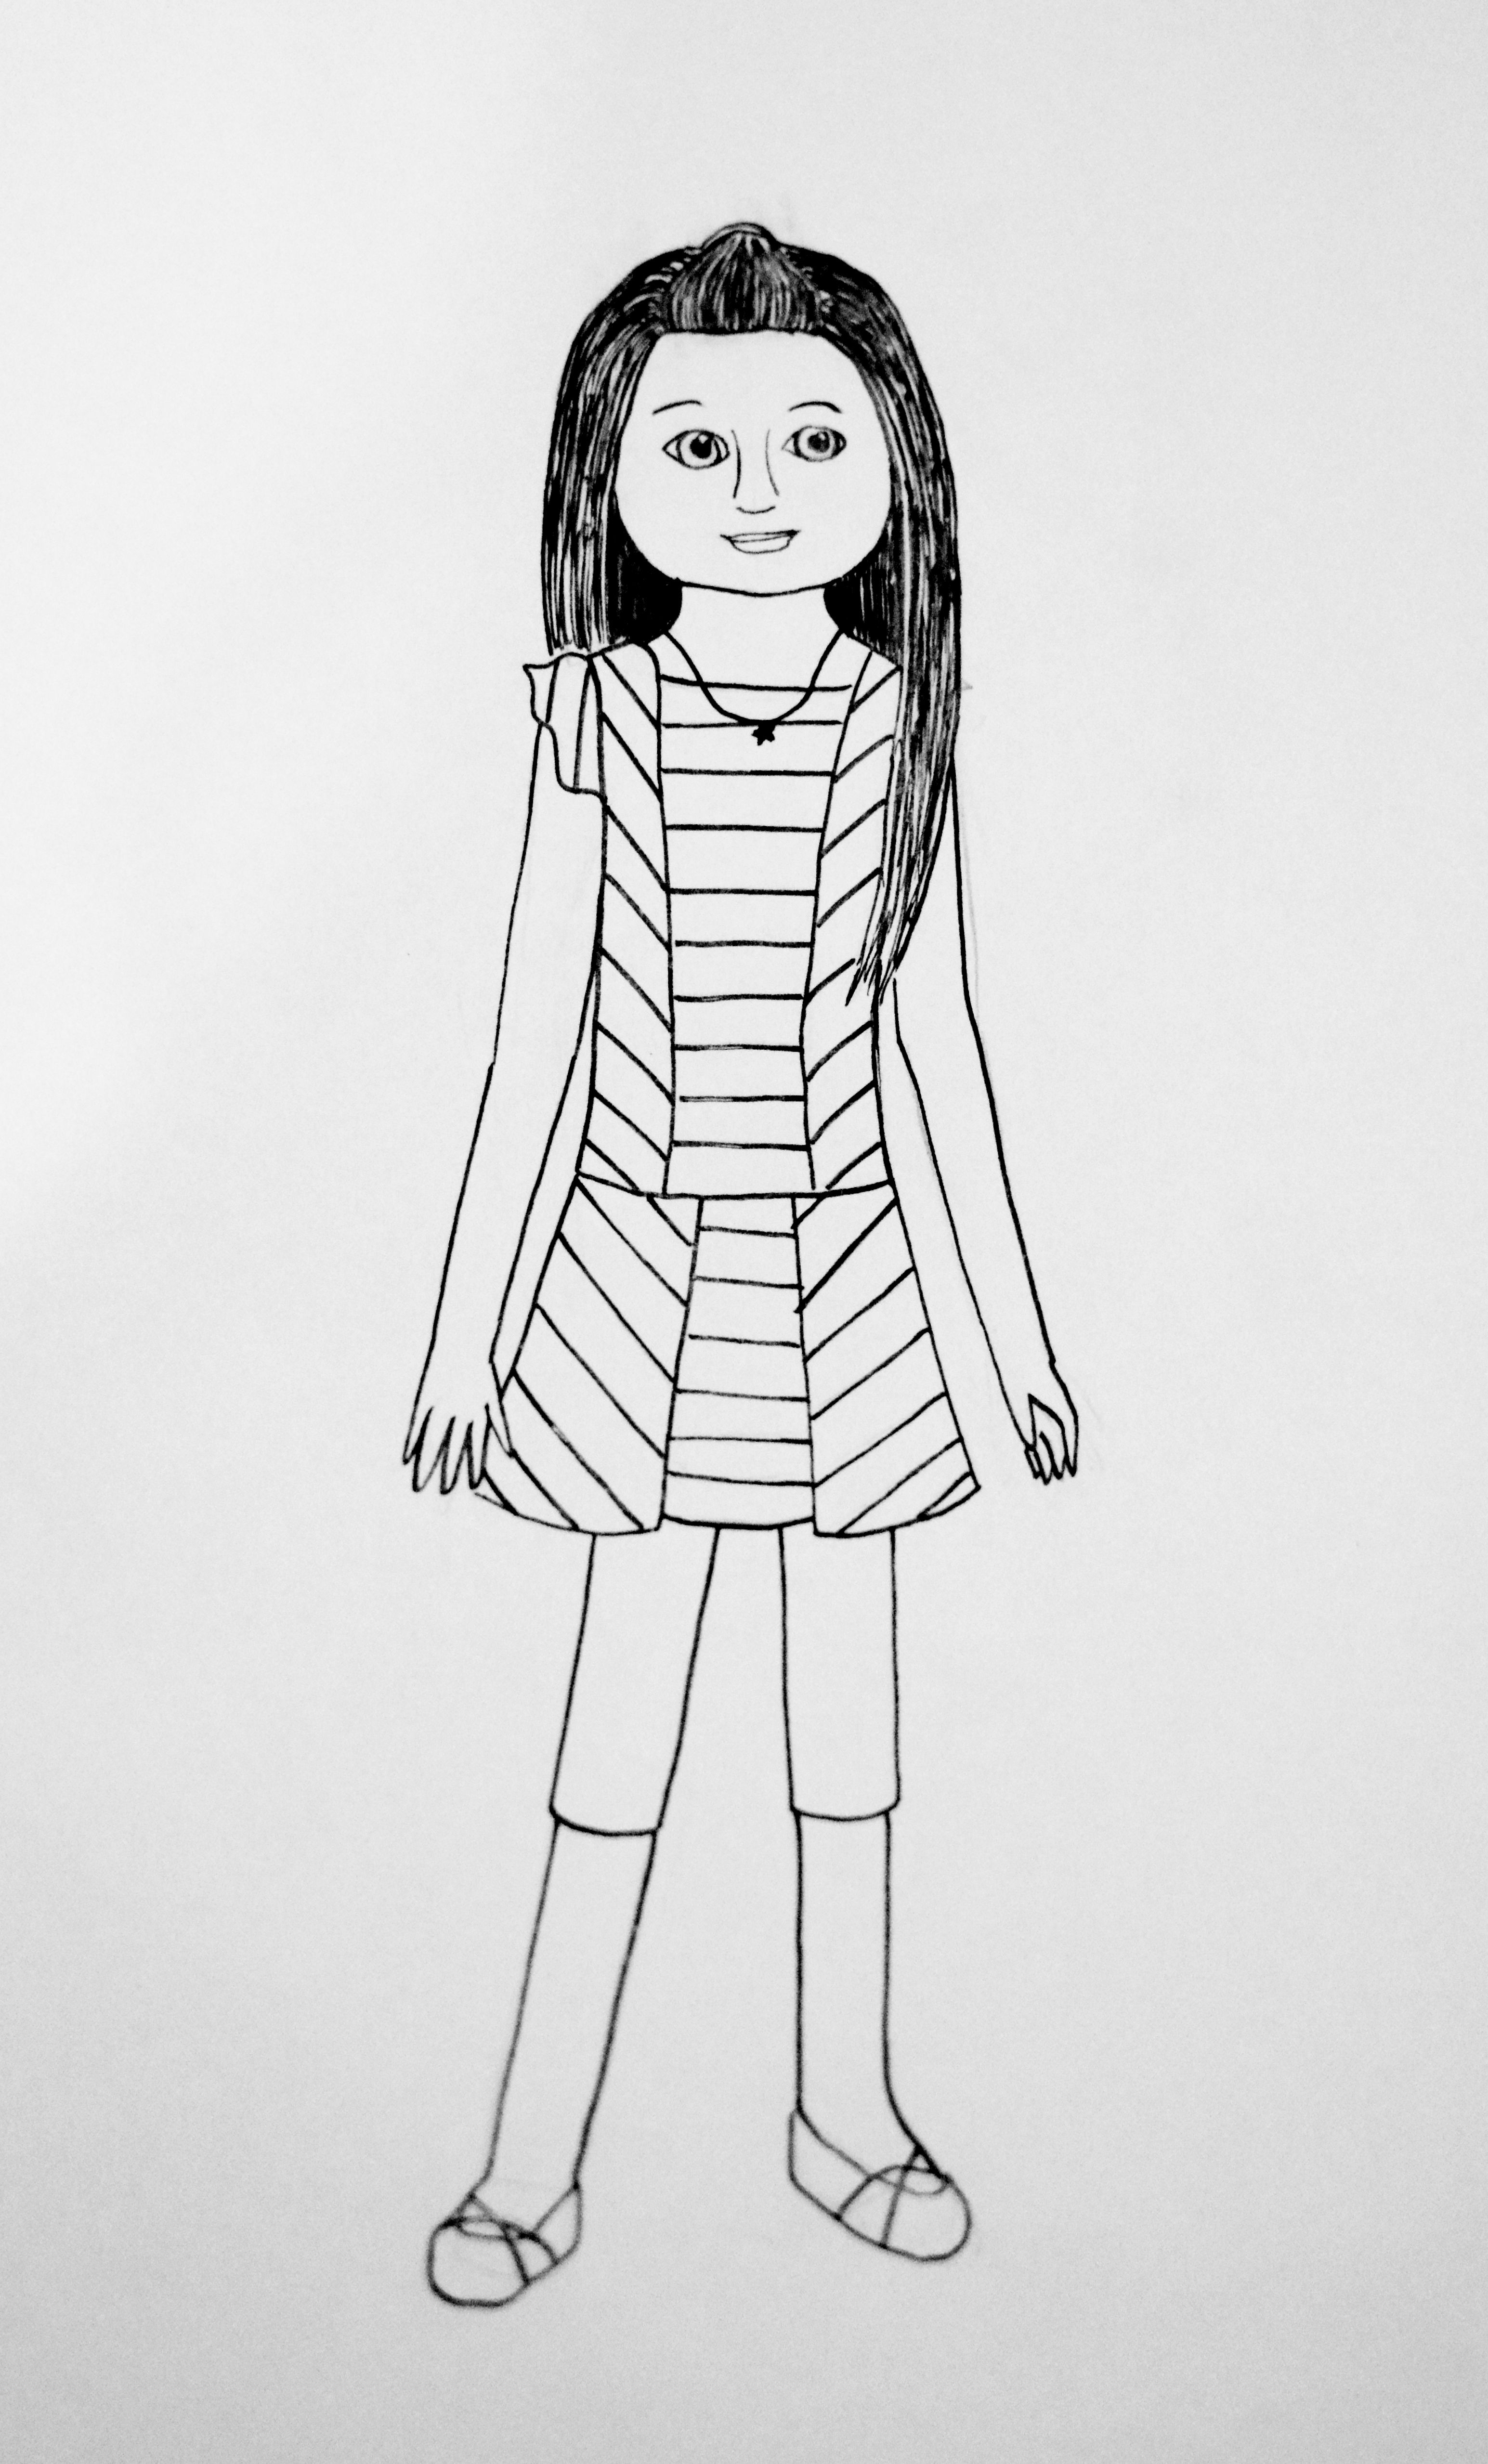 Girl Doll Coloring Pages Az Coloring Pages American Doll Isabelle Coloring Pages Printable